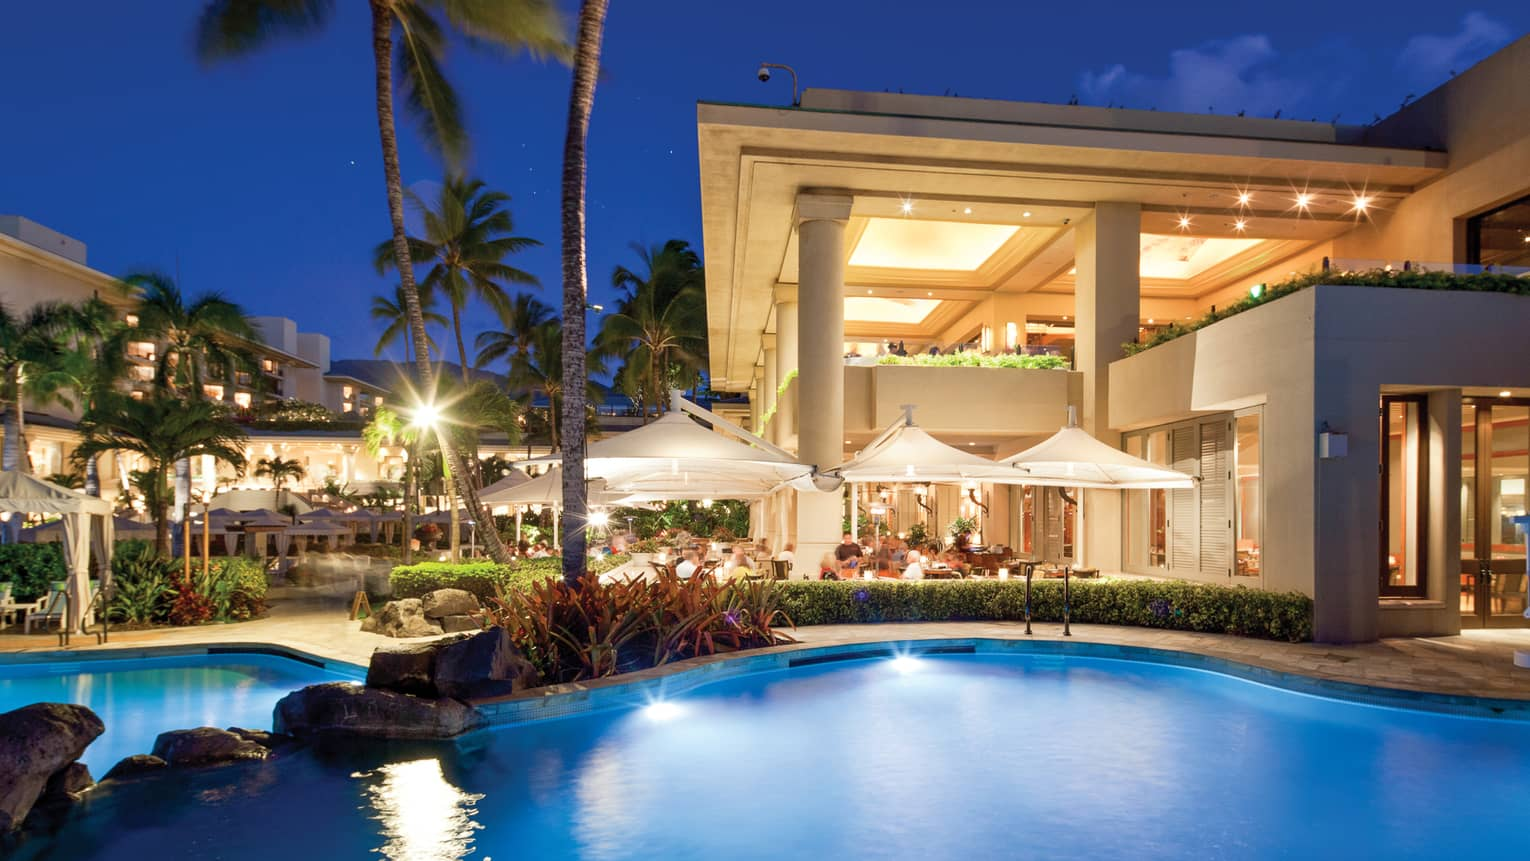 Guests dining beside the Keiki Pool, illuminated at night